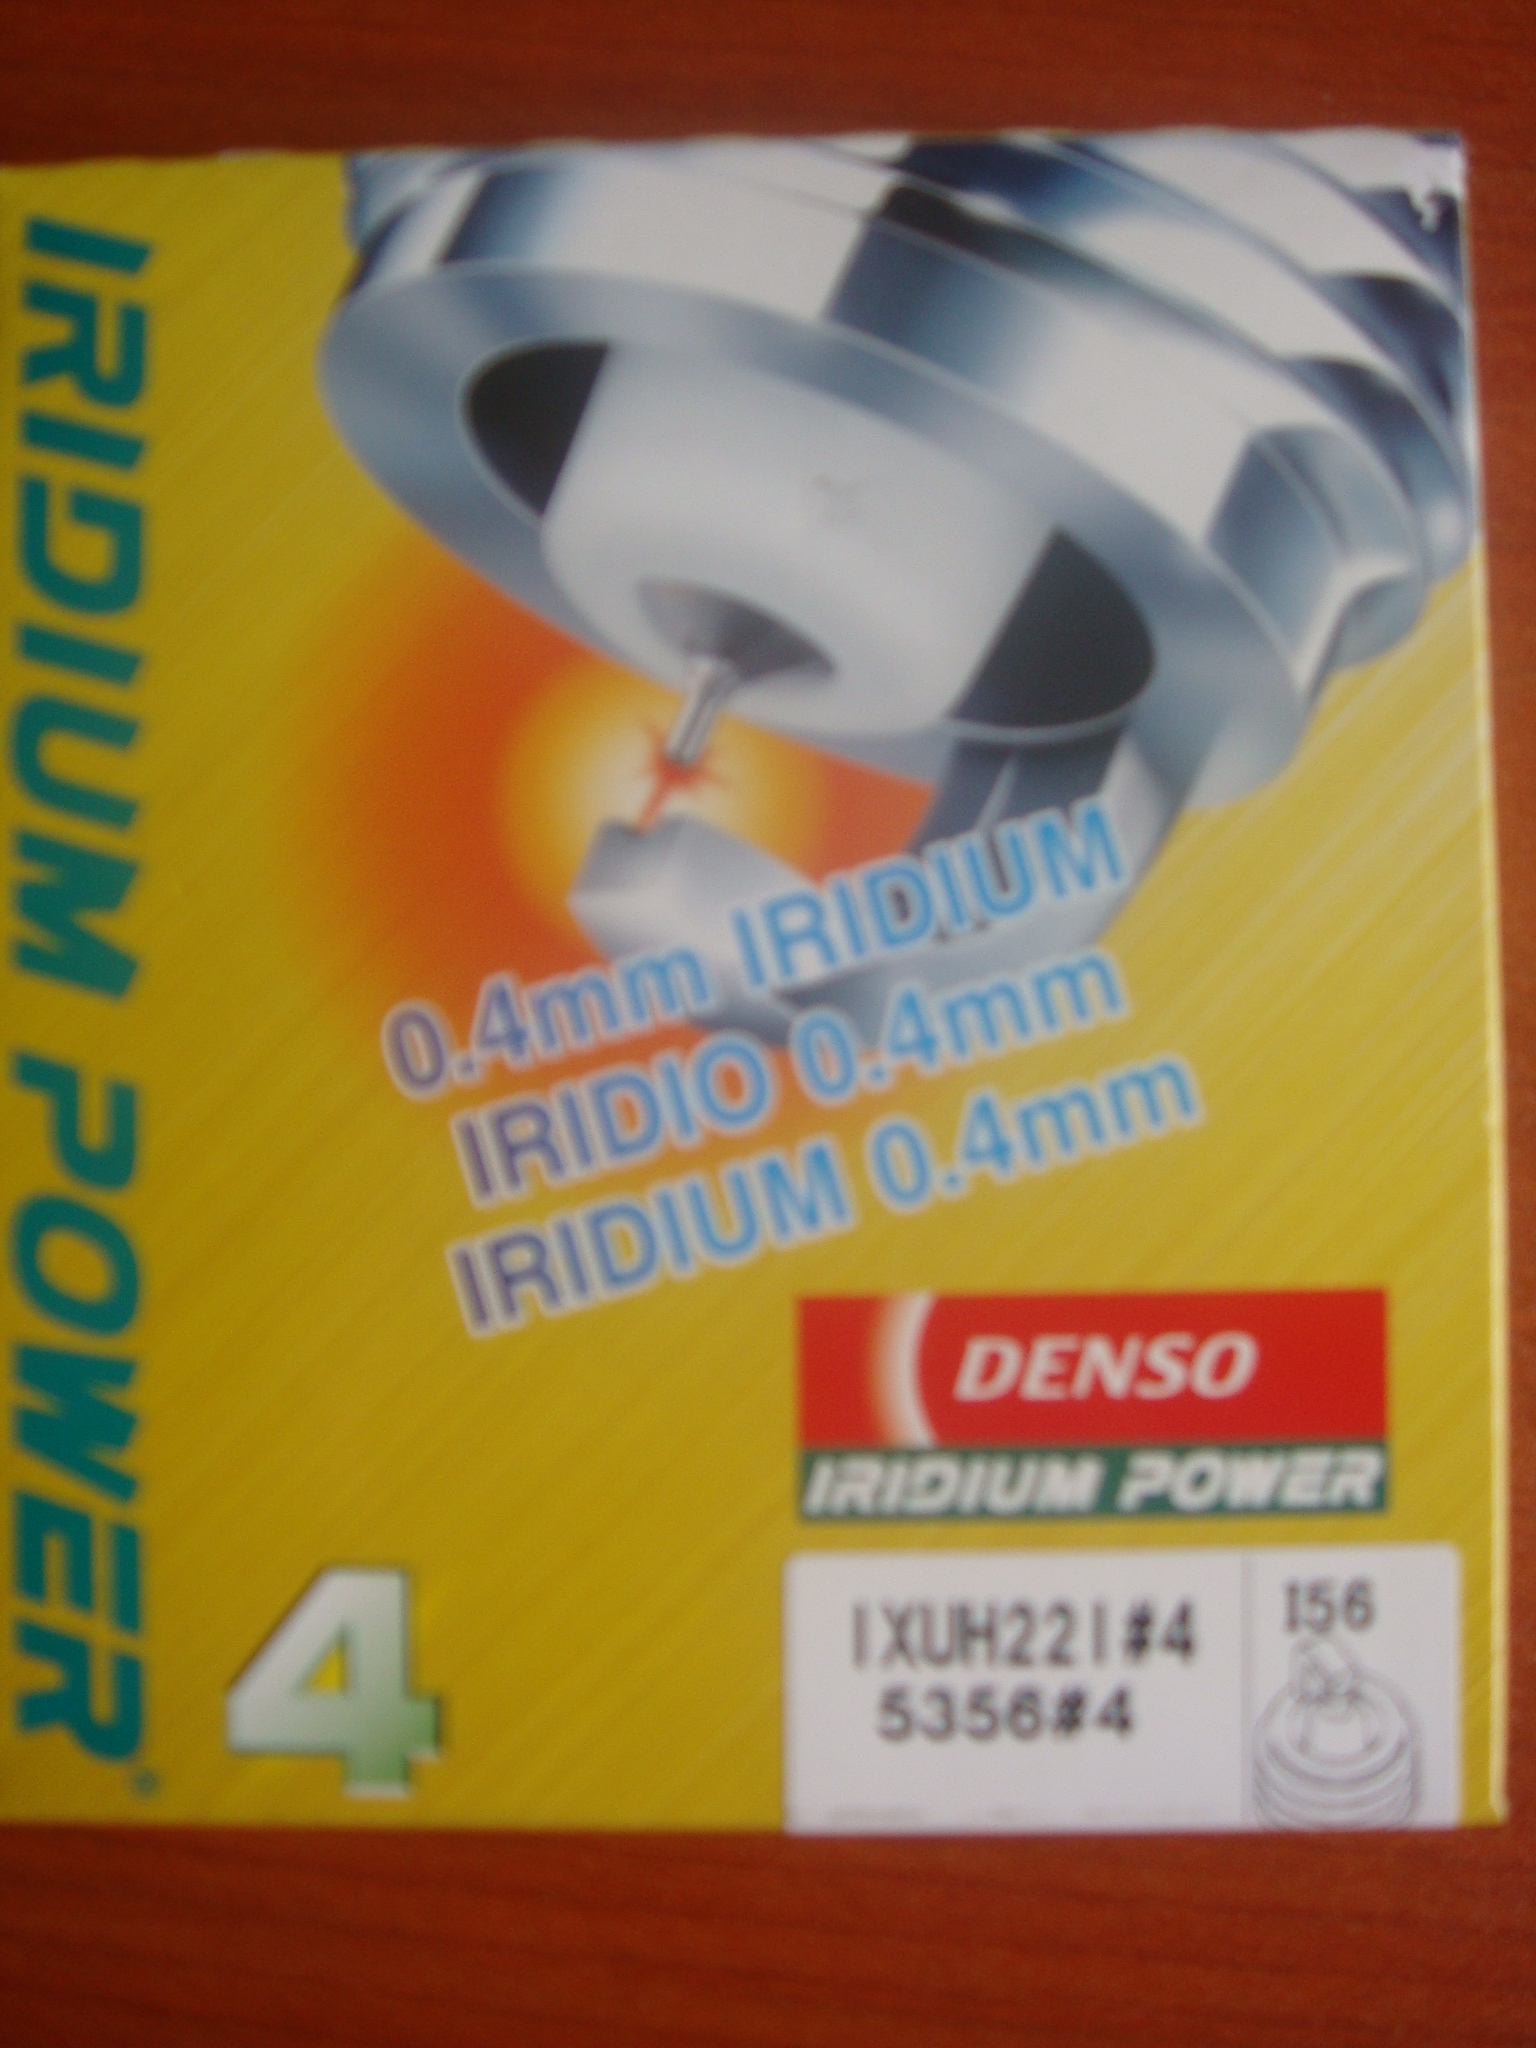 Denso Iridium Power IXUH22i